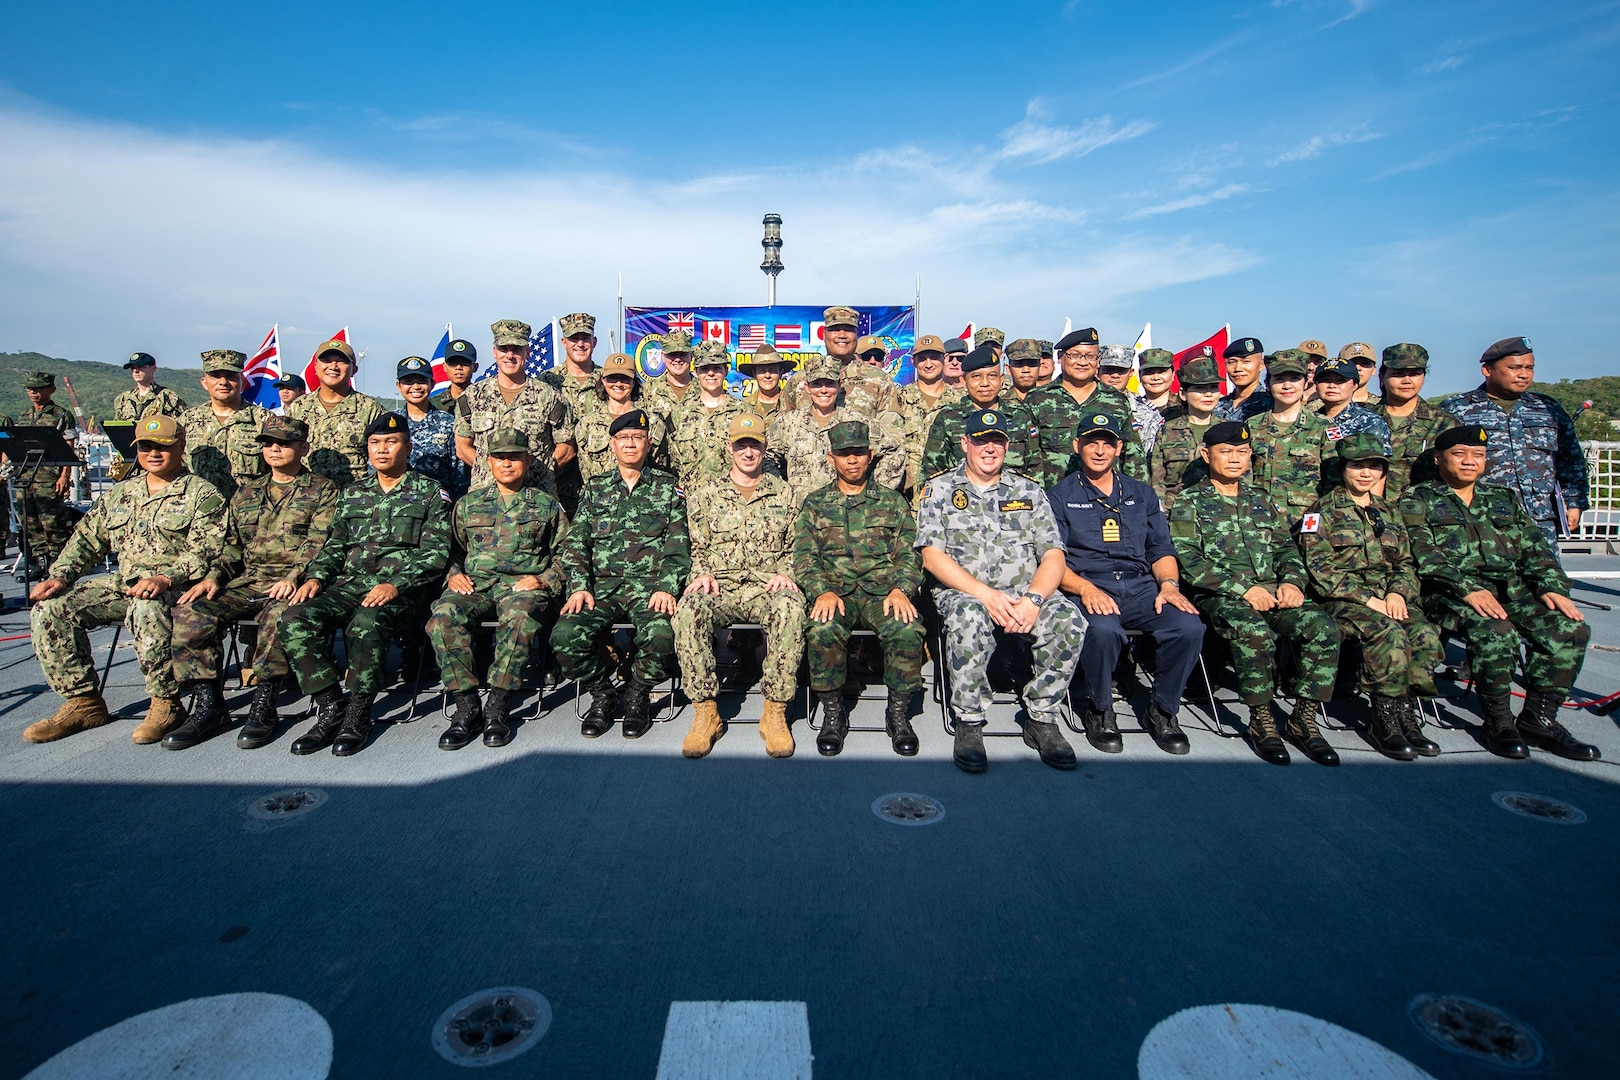 USNS Fall River arrives in Thailand for Final Pacific Partnership 2019 Mission Stop